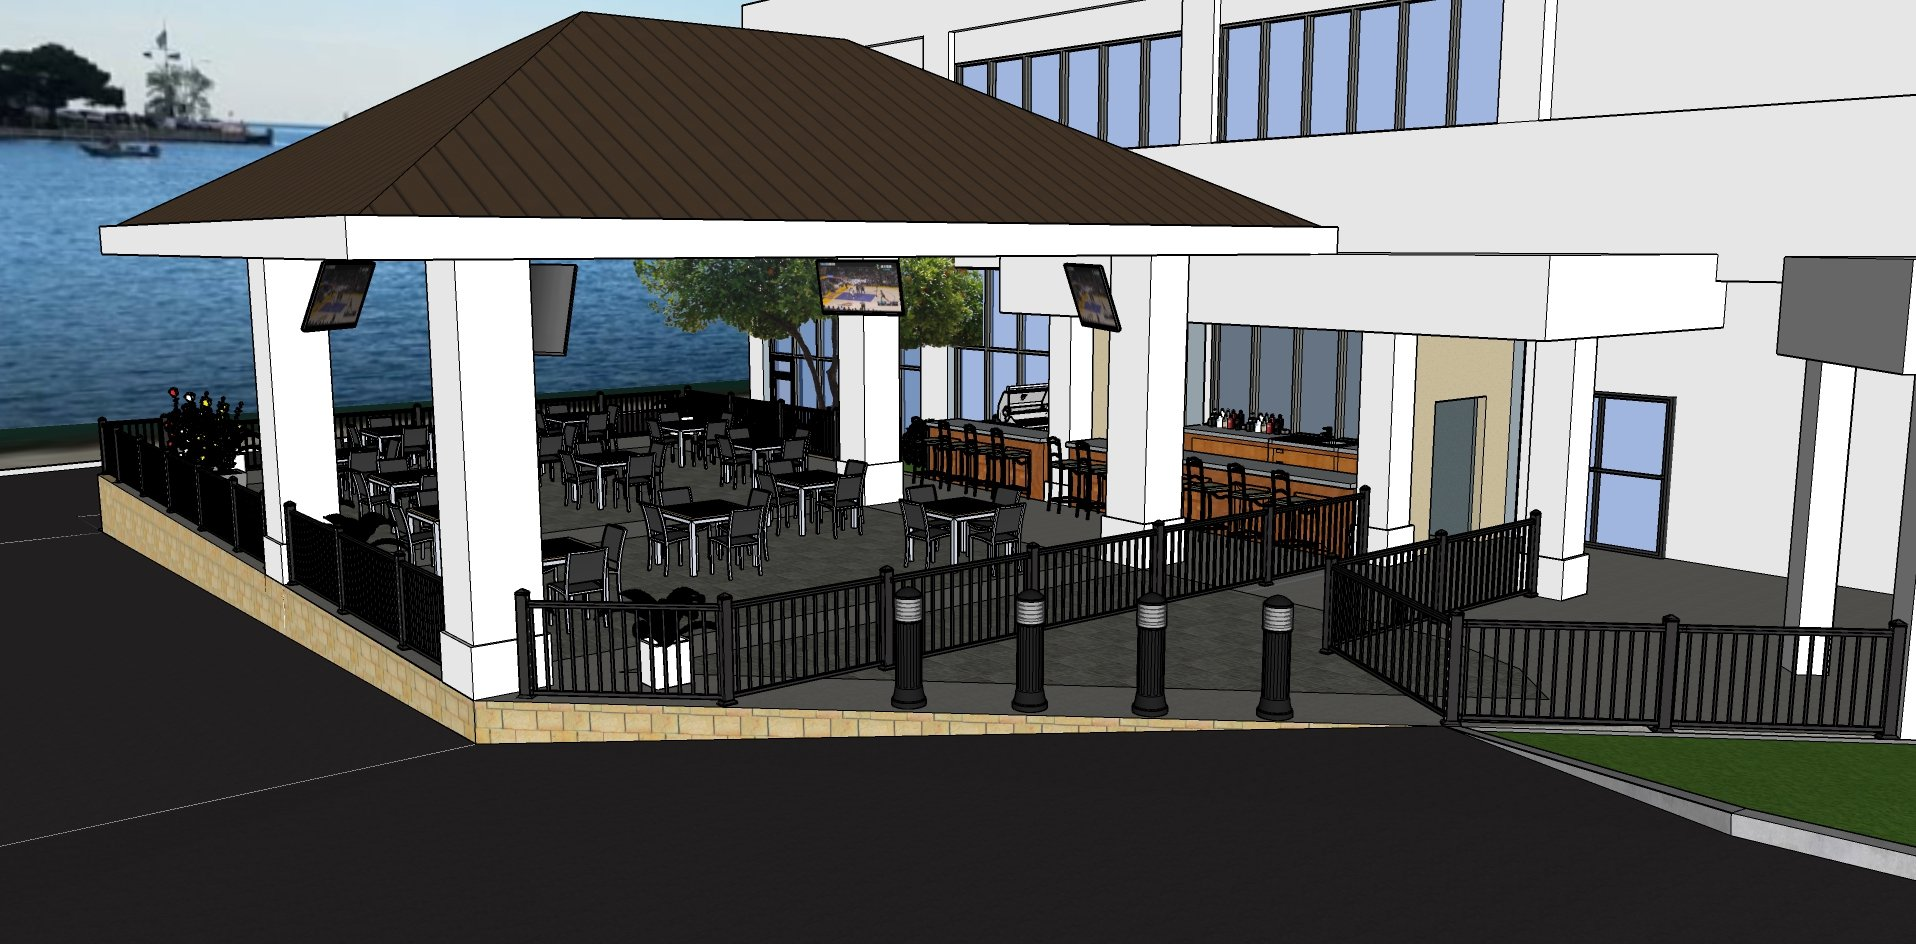 Lakeside patio bar coming summer 2019 - Wyndham garden kenosha harborside ...